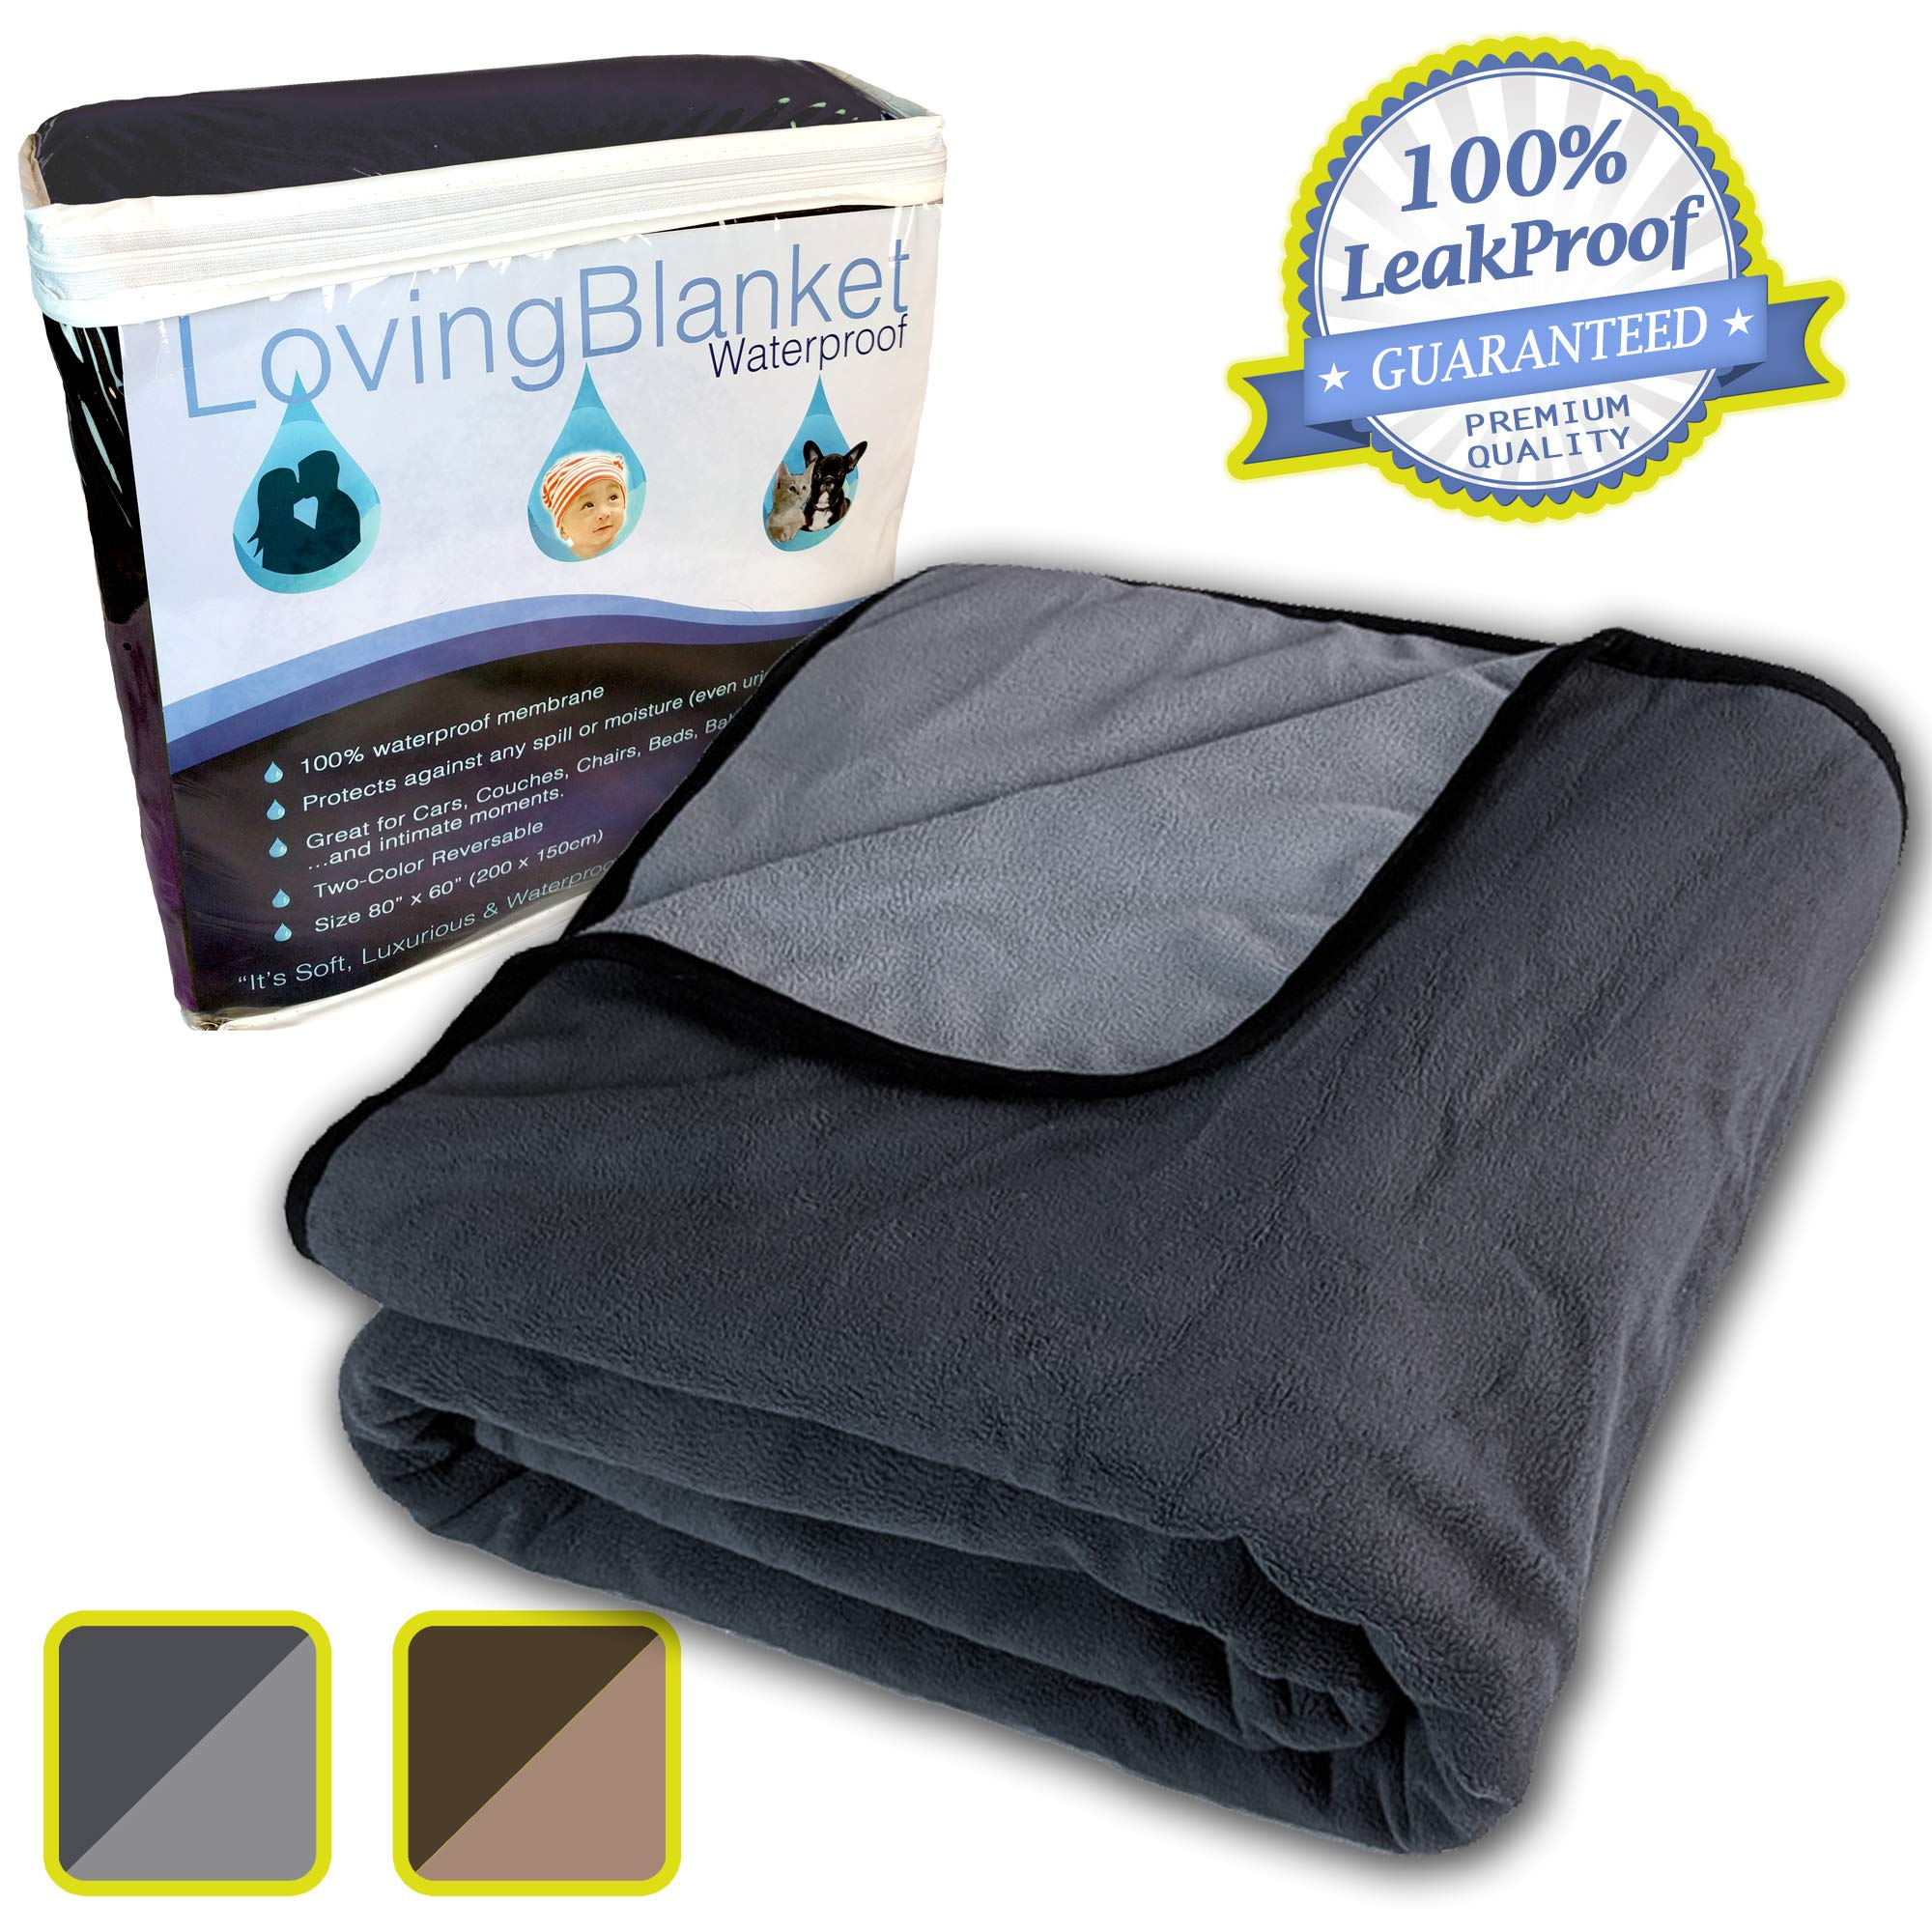 100% Leak Proof, Waterproof (See Video) Totally Pee Proof, 3 Layer Blanket | Baby, Adults, Pets, Dogs & Cats Love The Cozy Softness | Reversible Large | Outdoor Camping Sports, Premium Quality (Grey)